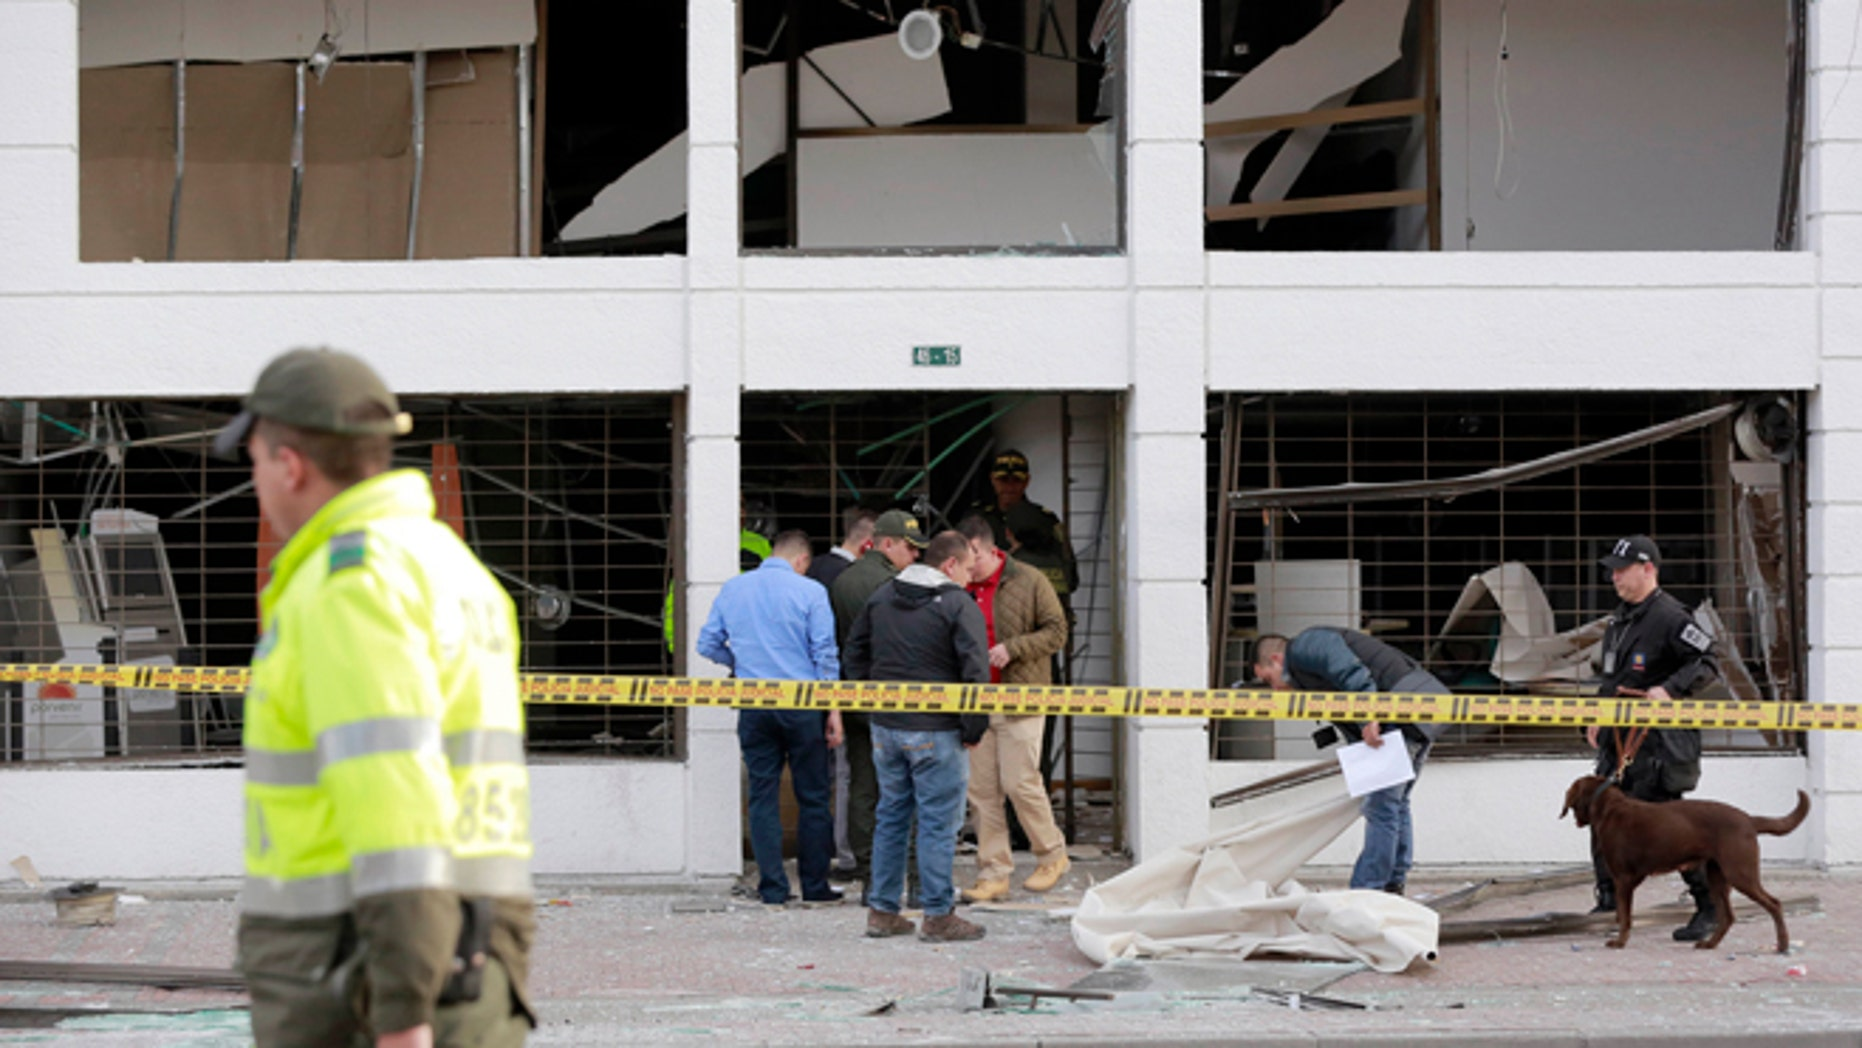 Police officers inspect an office after it was wrecked by an explosion in Bogota, Colombia, Thursday, July 2, 2015. A homemade explosive device went off in the financial district of Colombia's capital and wounded several people, while a second blast elsewhere in Bogota injured another, authorities said. (AP Photo/Fernando Vergara)